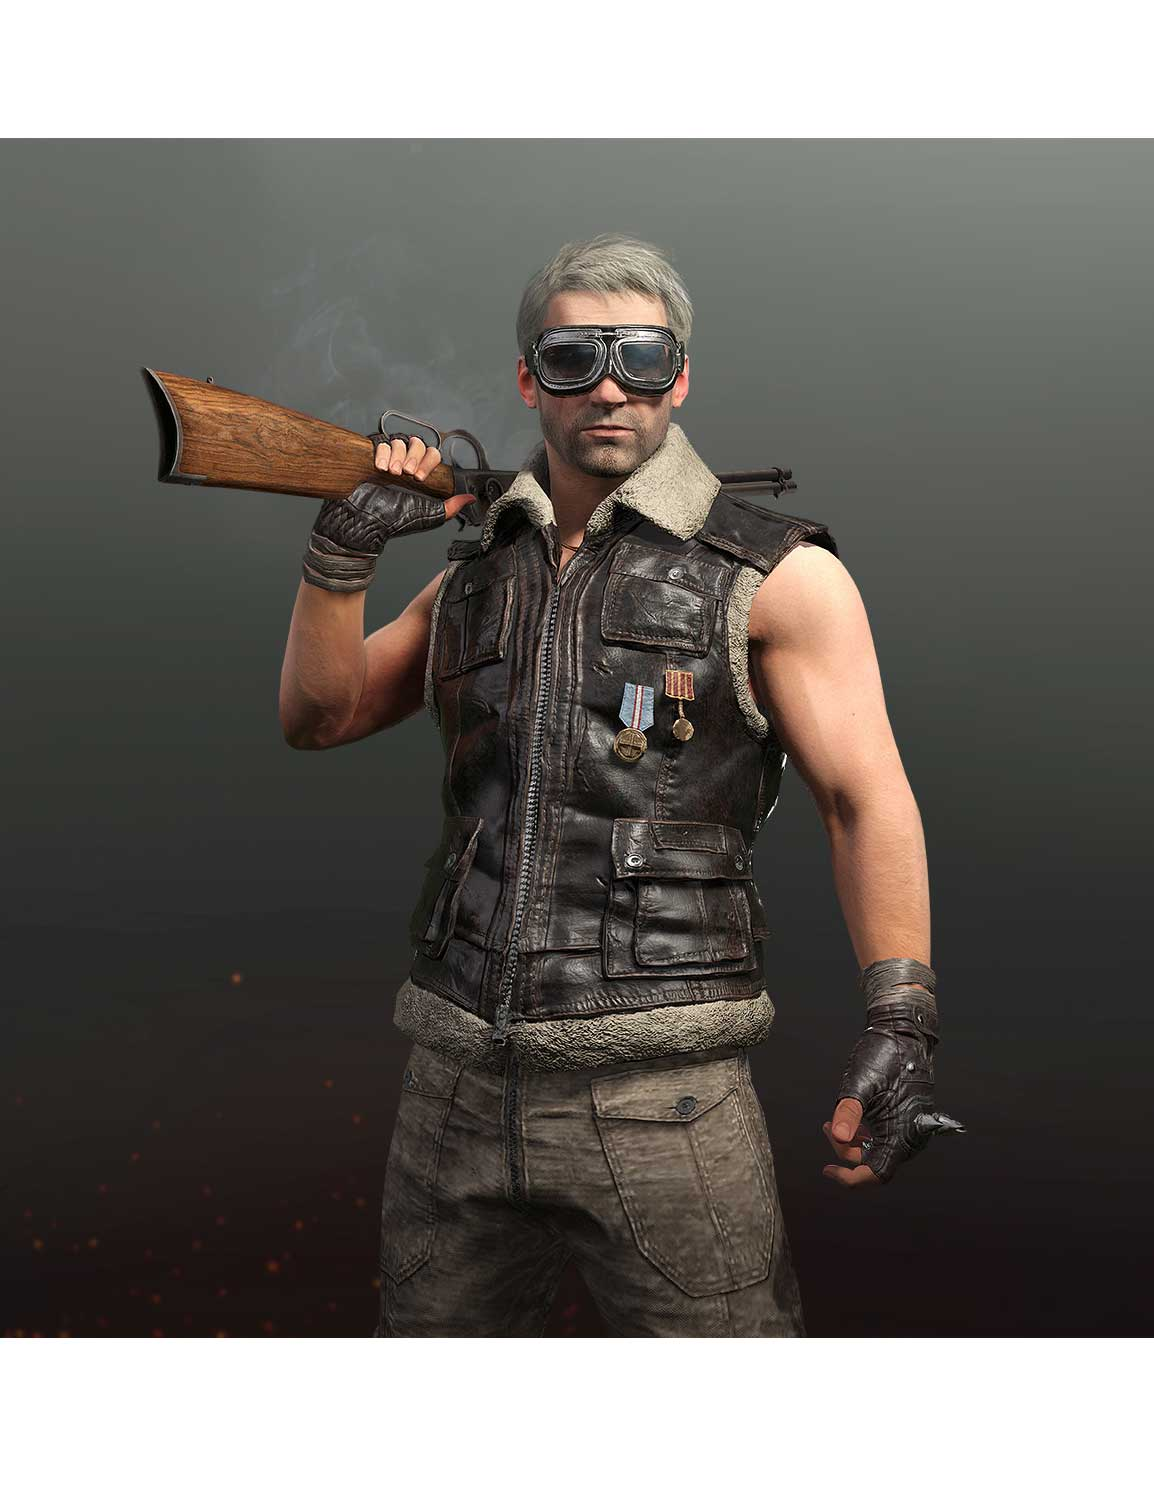 fef8f04a2e737a Battlegrounds Pubg Sleeveless Leather Jacket - Hjackets